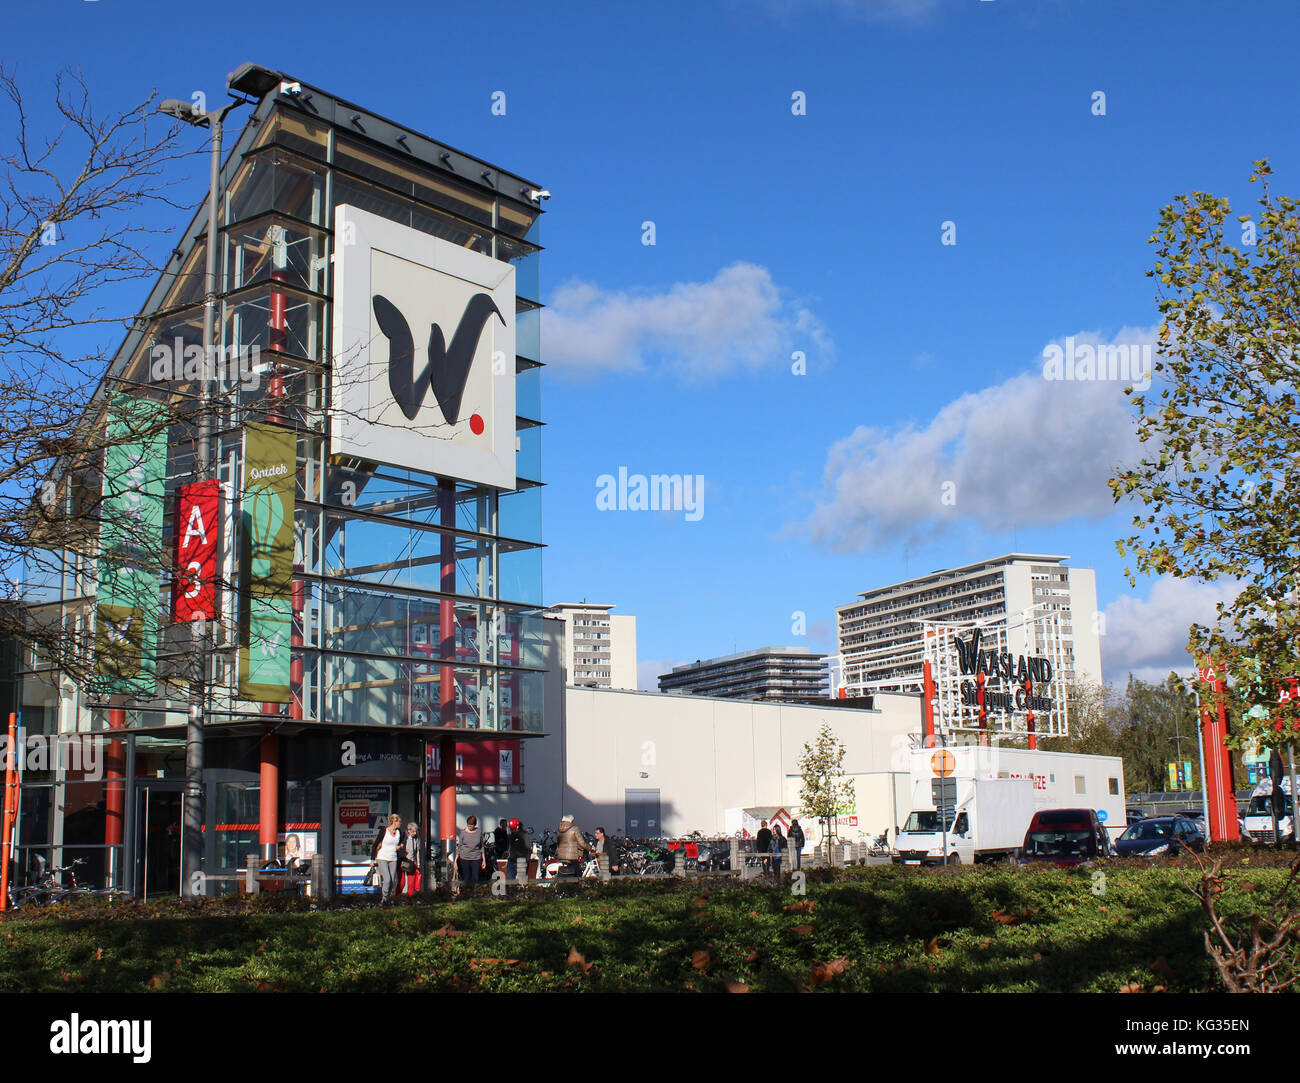 SINT- NIKLAAS, BELGIUM, OCTOBER 27 2017: The retail 'Waasland Shopping Center' with 140 shops it is one - Stock Image